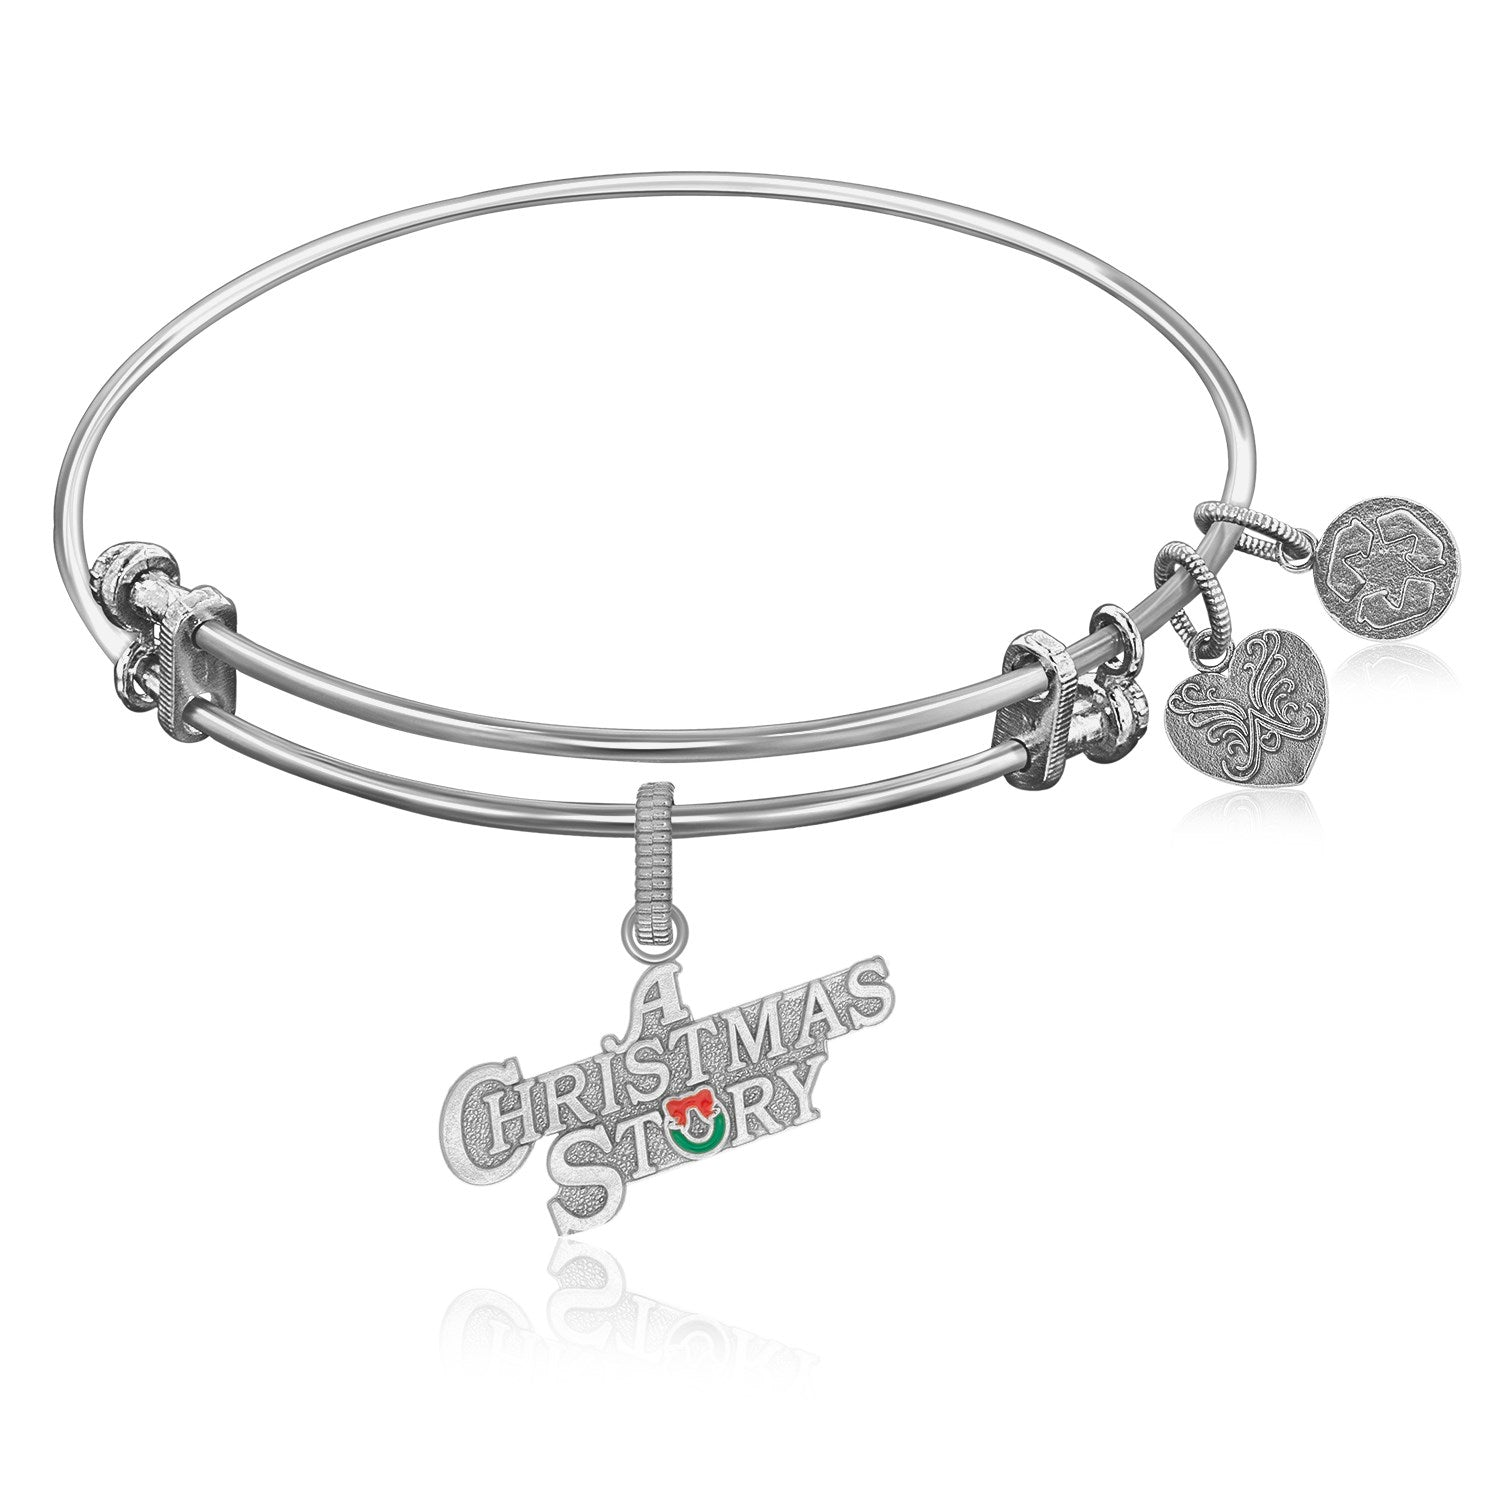 Expandable Bangle in White Tone Brass with A Christmas Story Symbol